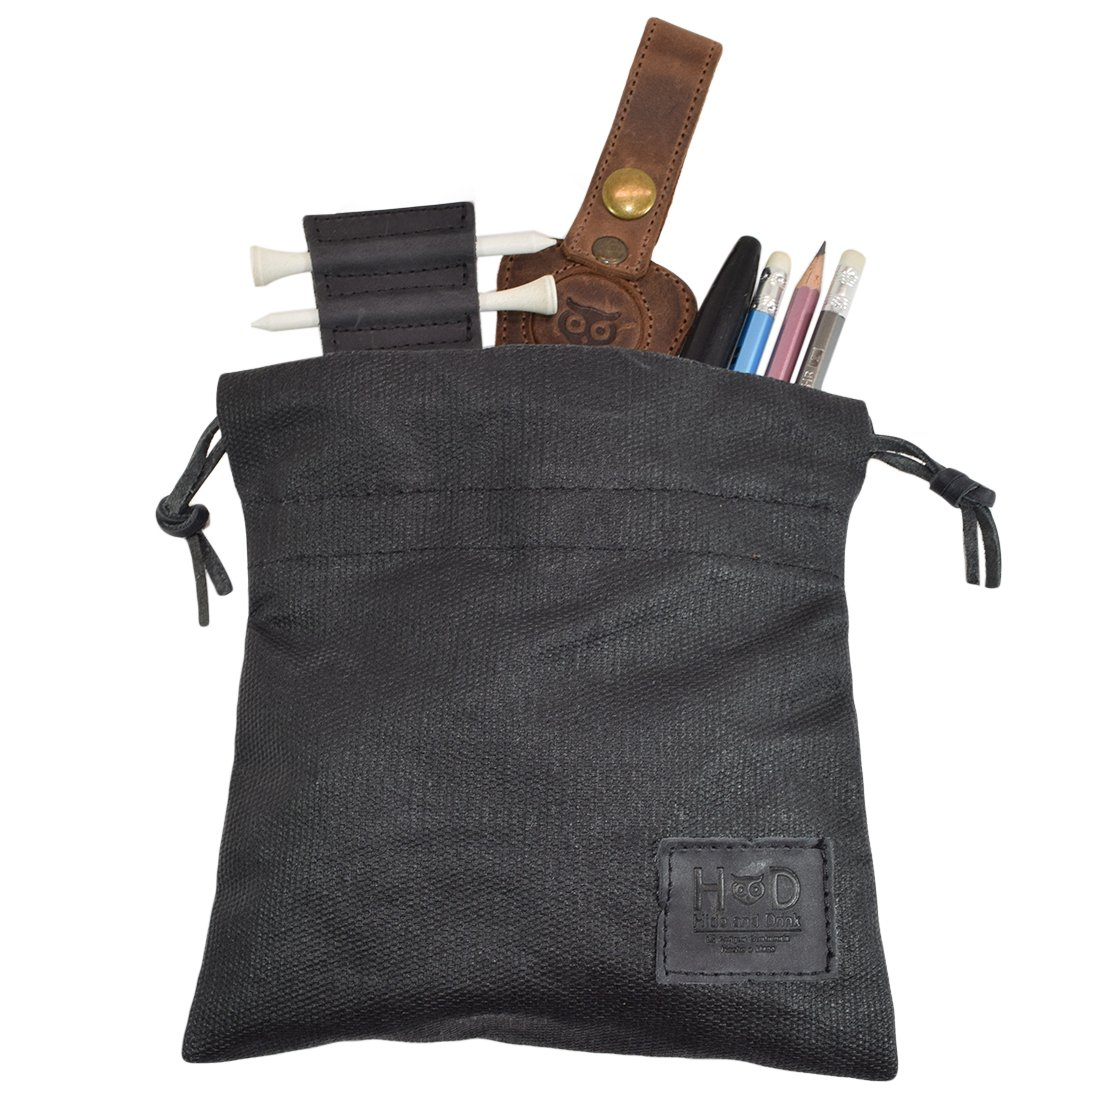 Hide & Drink Waxed Canvas Golf Valuables Field/Travel/Tech/Board Game Dice Pouch Handmade by Charcoal Black